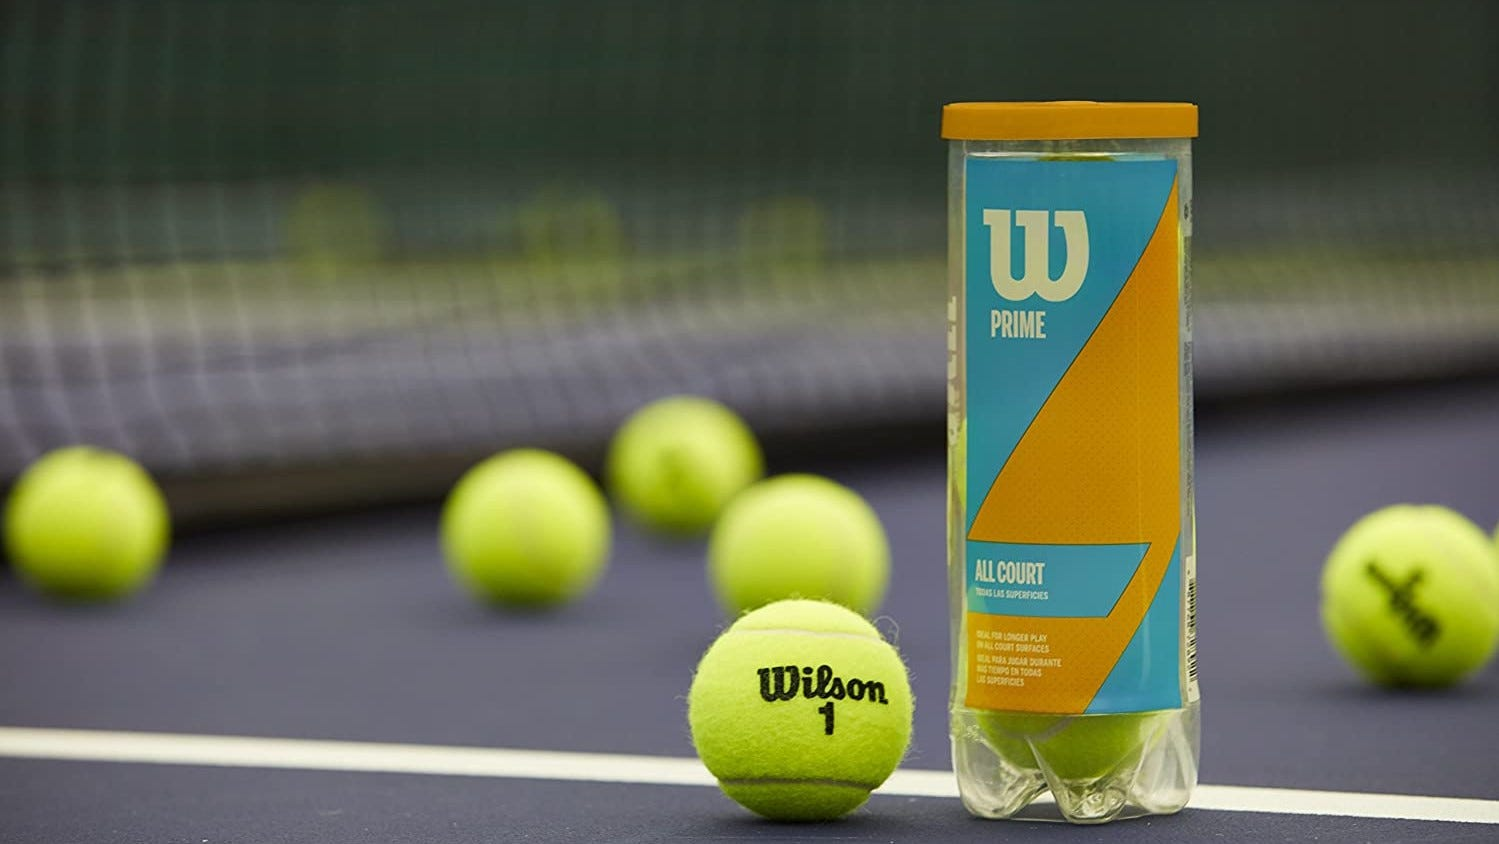 A Wilson tennis balls container surrounded by balls on a tennis court.